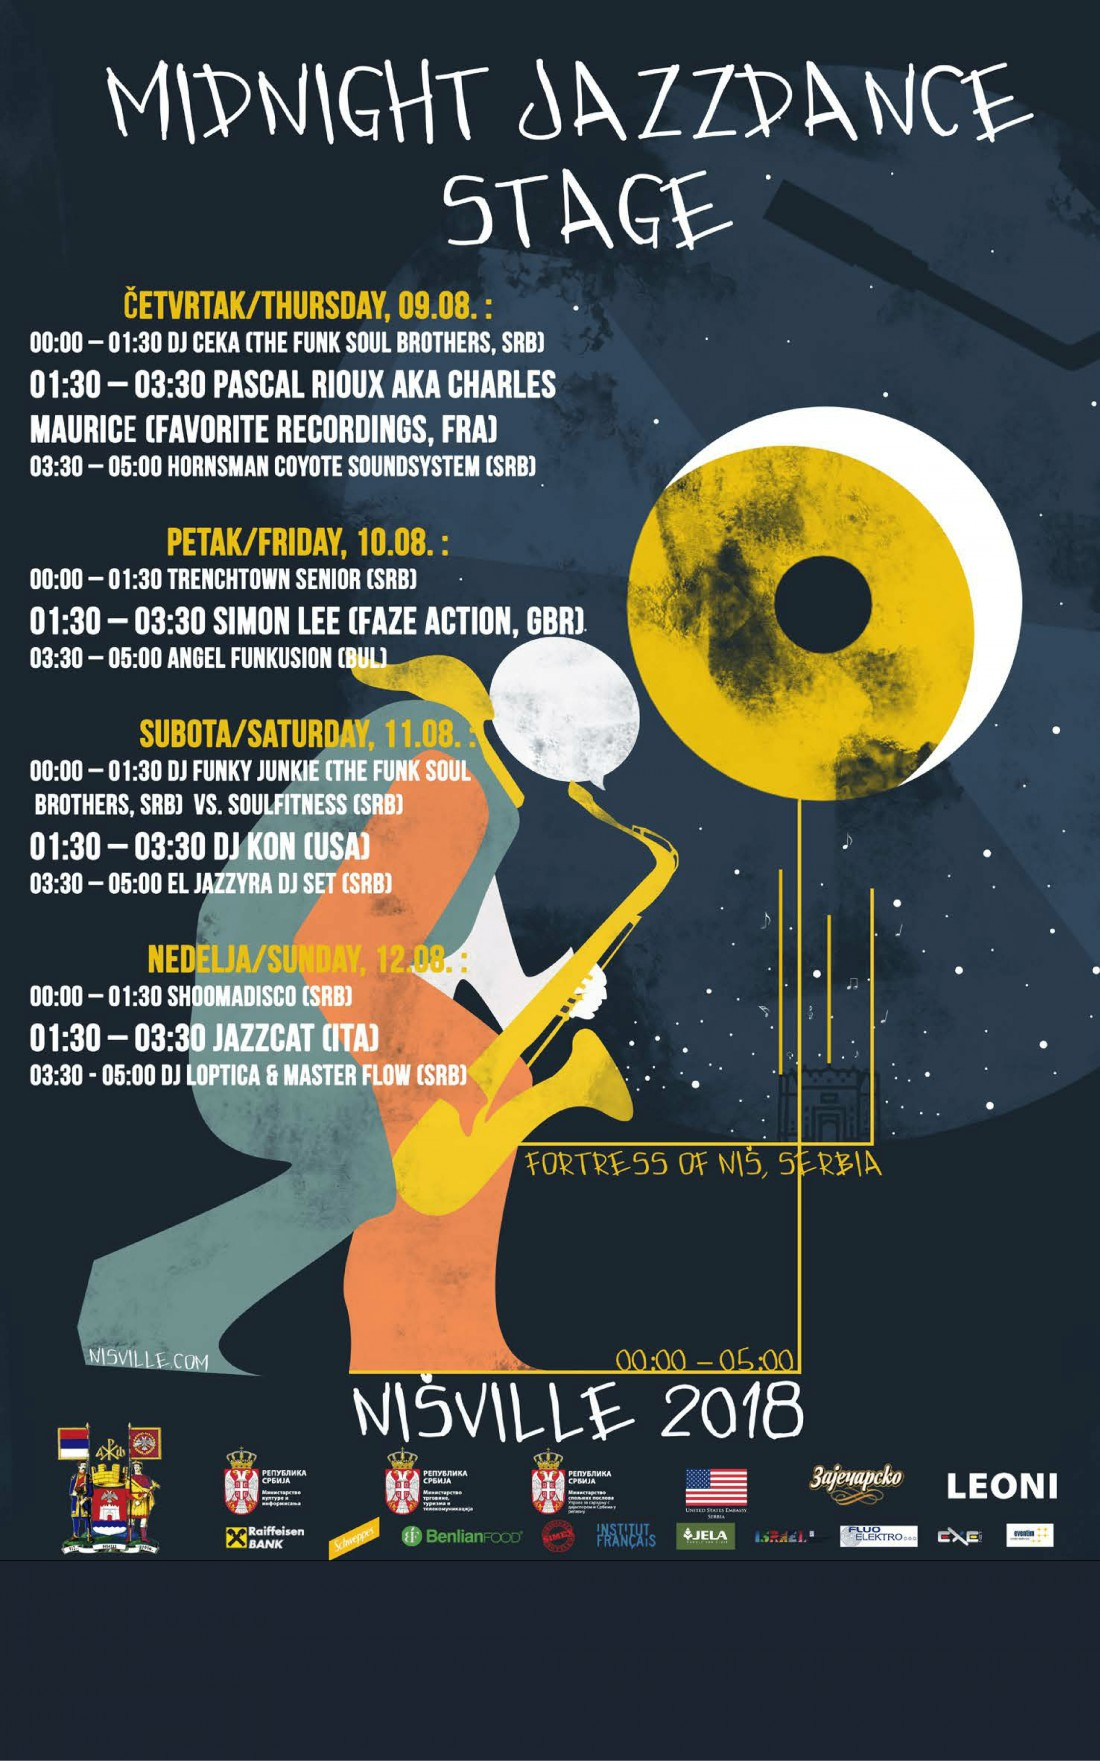 Midnight Jazz Dance LIneup - Nisville 2018